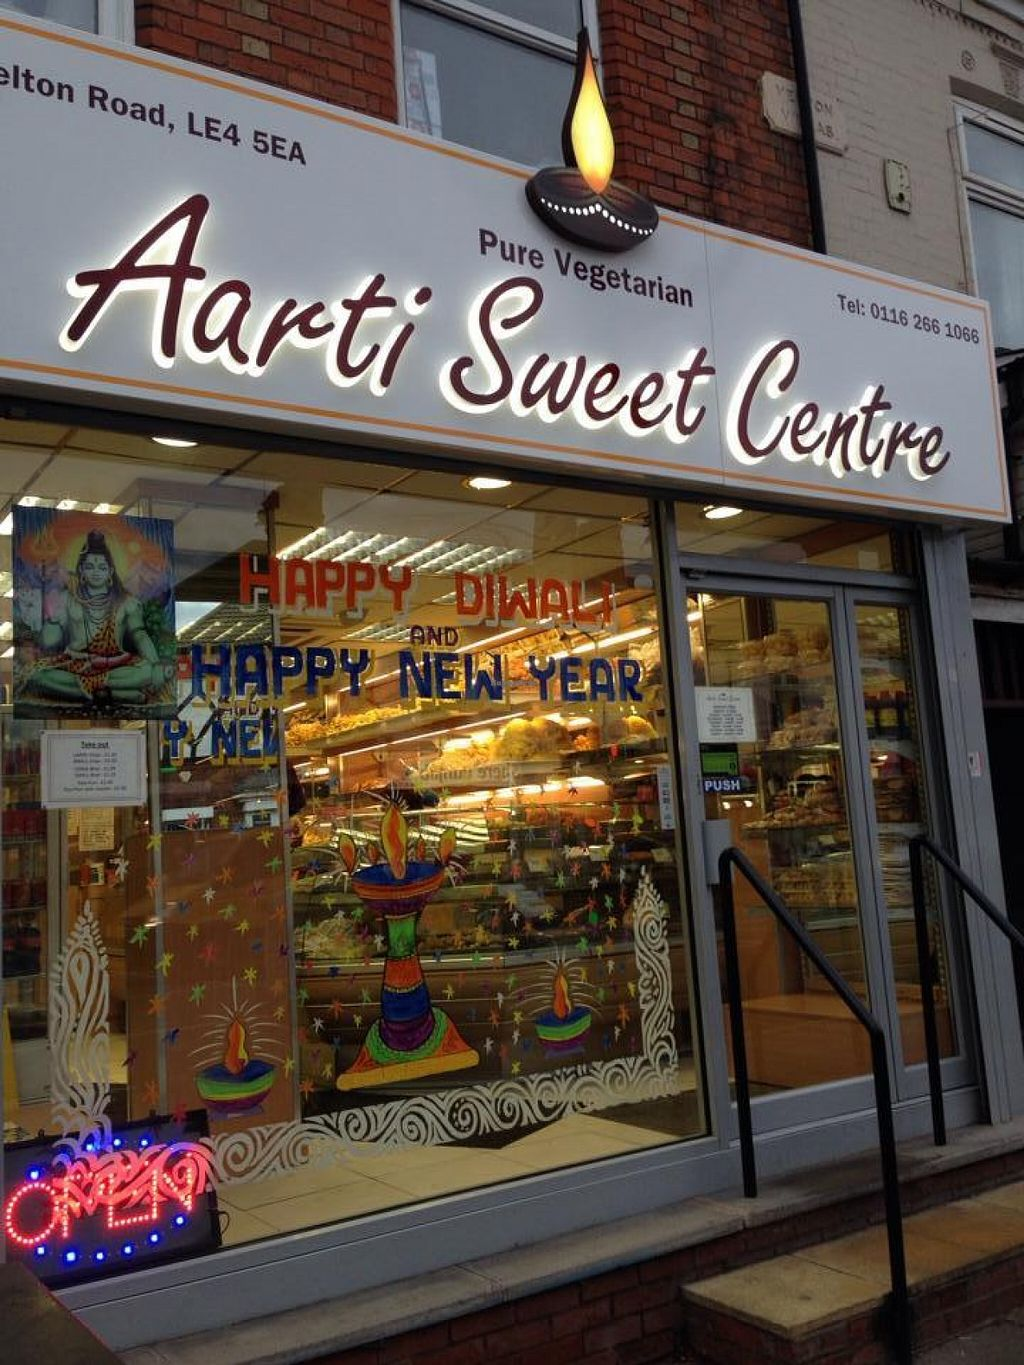 """Photo of Aarti Sweet Centre  by <a href=""""/members/profile/community"""">community</a> <br/>Aarti Sweet Centre <br/> September 20, 2015  - <a href='/contact/abuse/image/63608/118518'>Report</a>"""